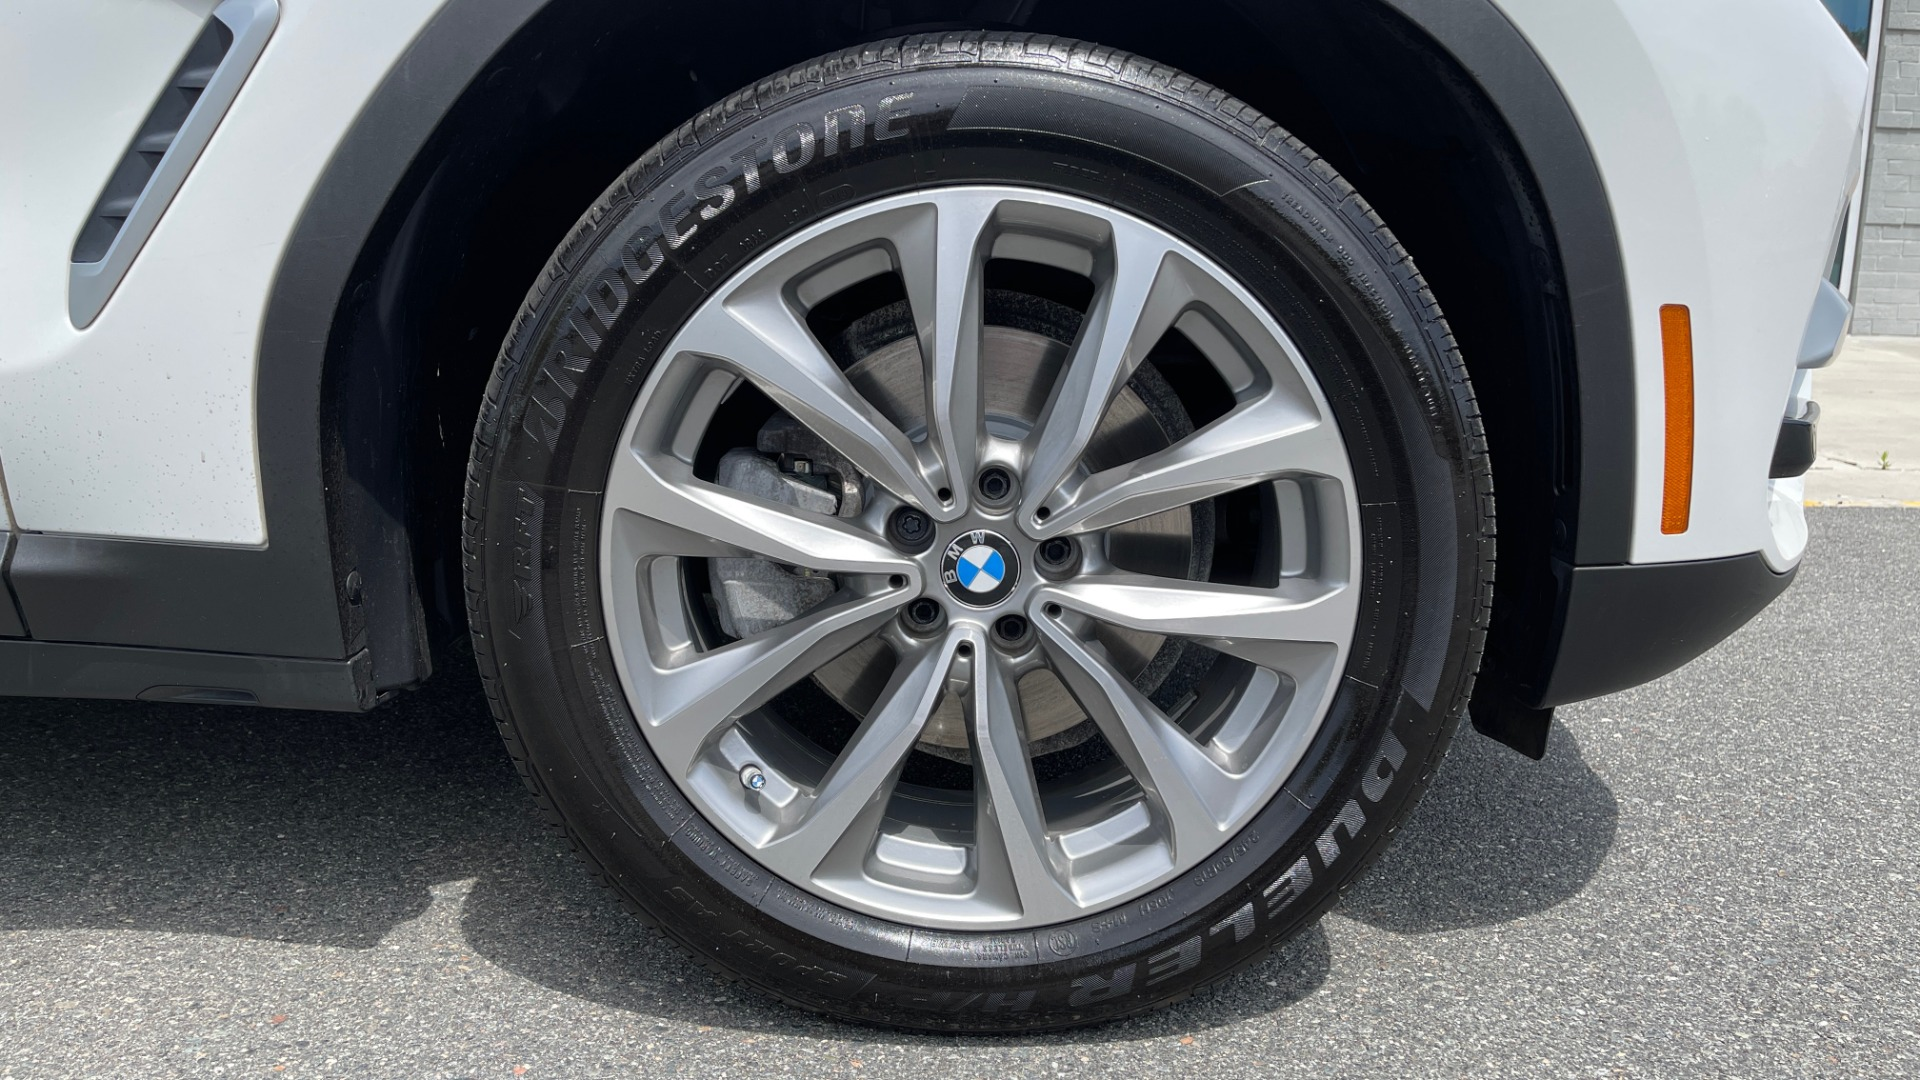 Used 2018 BMW X3 XDRIVE30I PREMIUM / NAV / DRVR ASST / CONV PKG / SUNROOF / REARVIEW for sale $32,695 at Formula Imports in Charlotte NC 28227 89